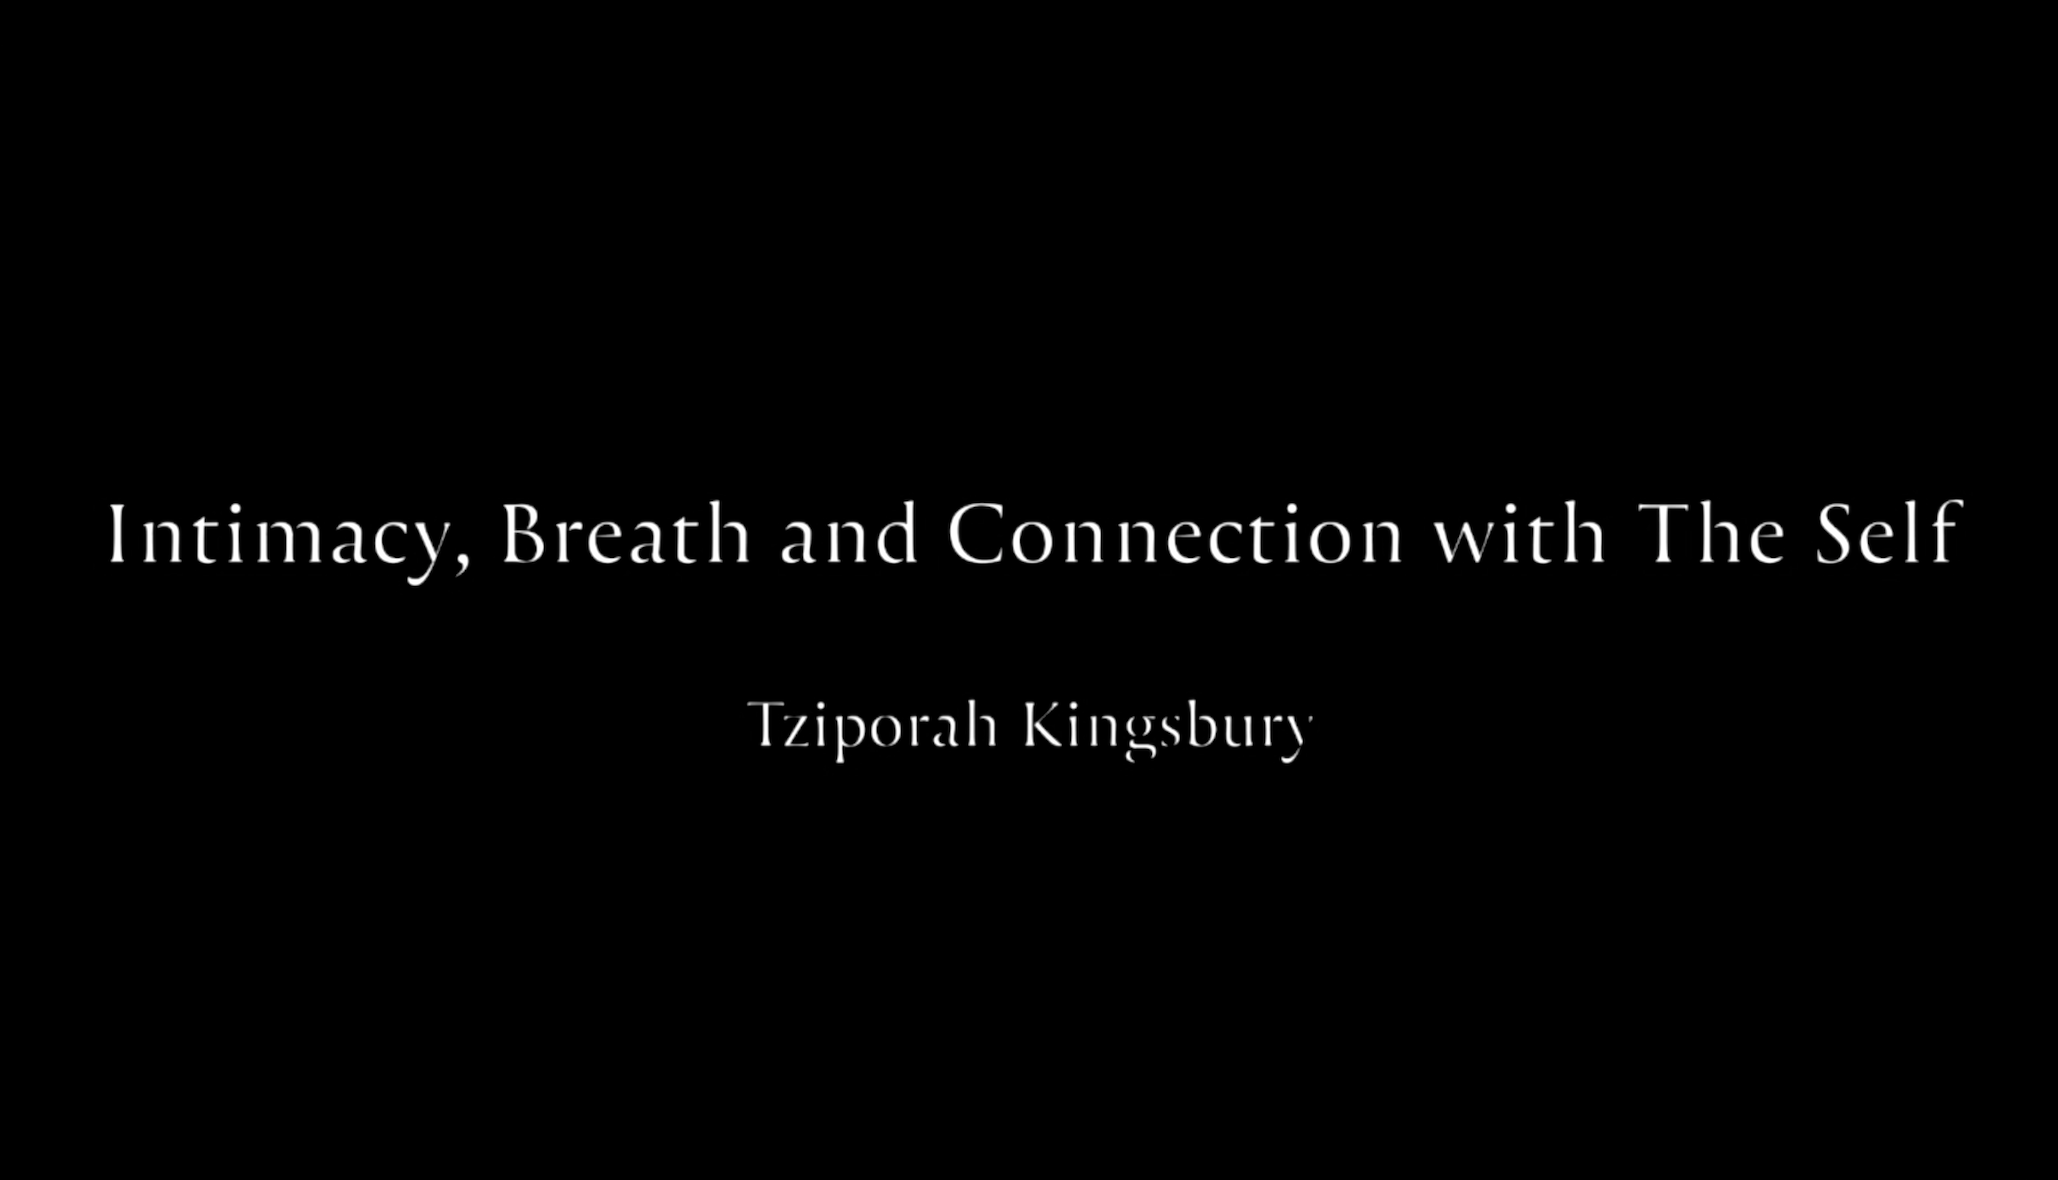 Intimacy, Breath and Connection with the Self